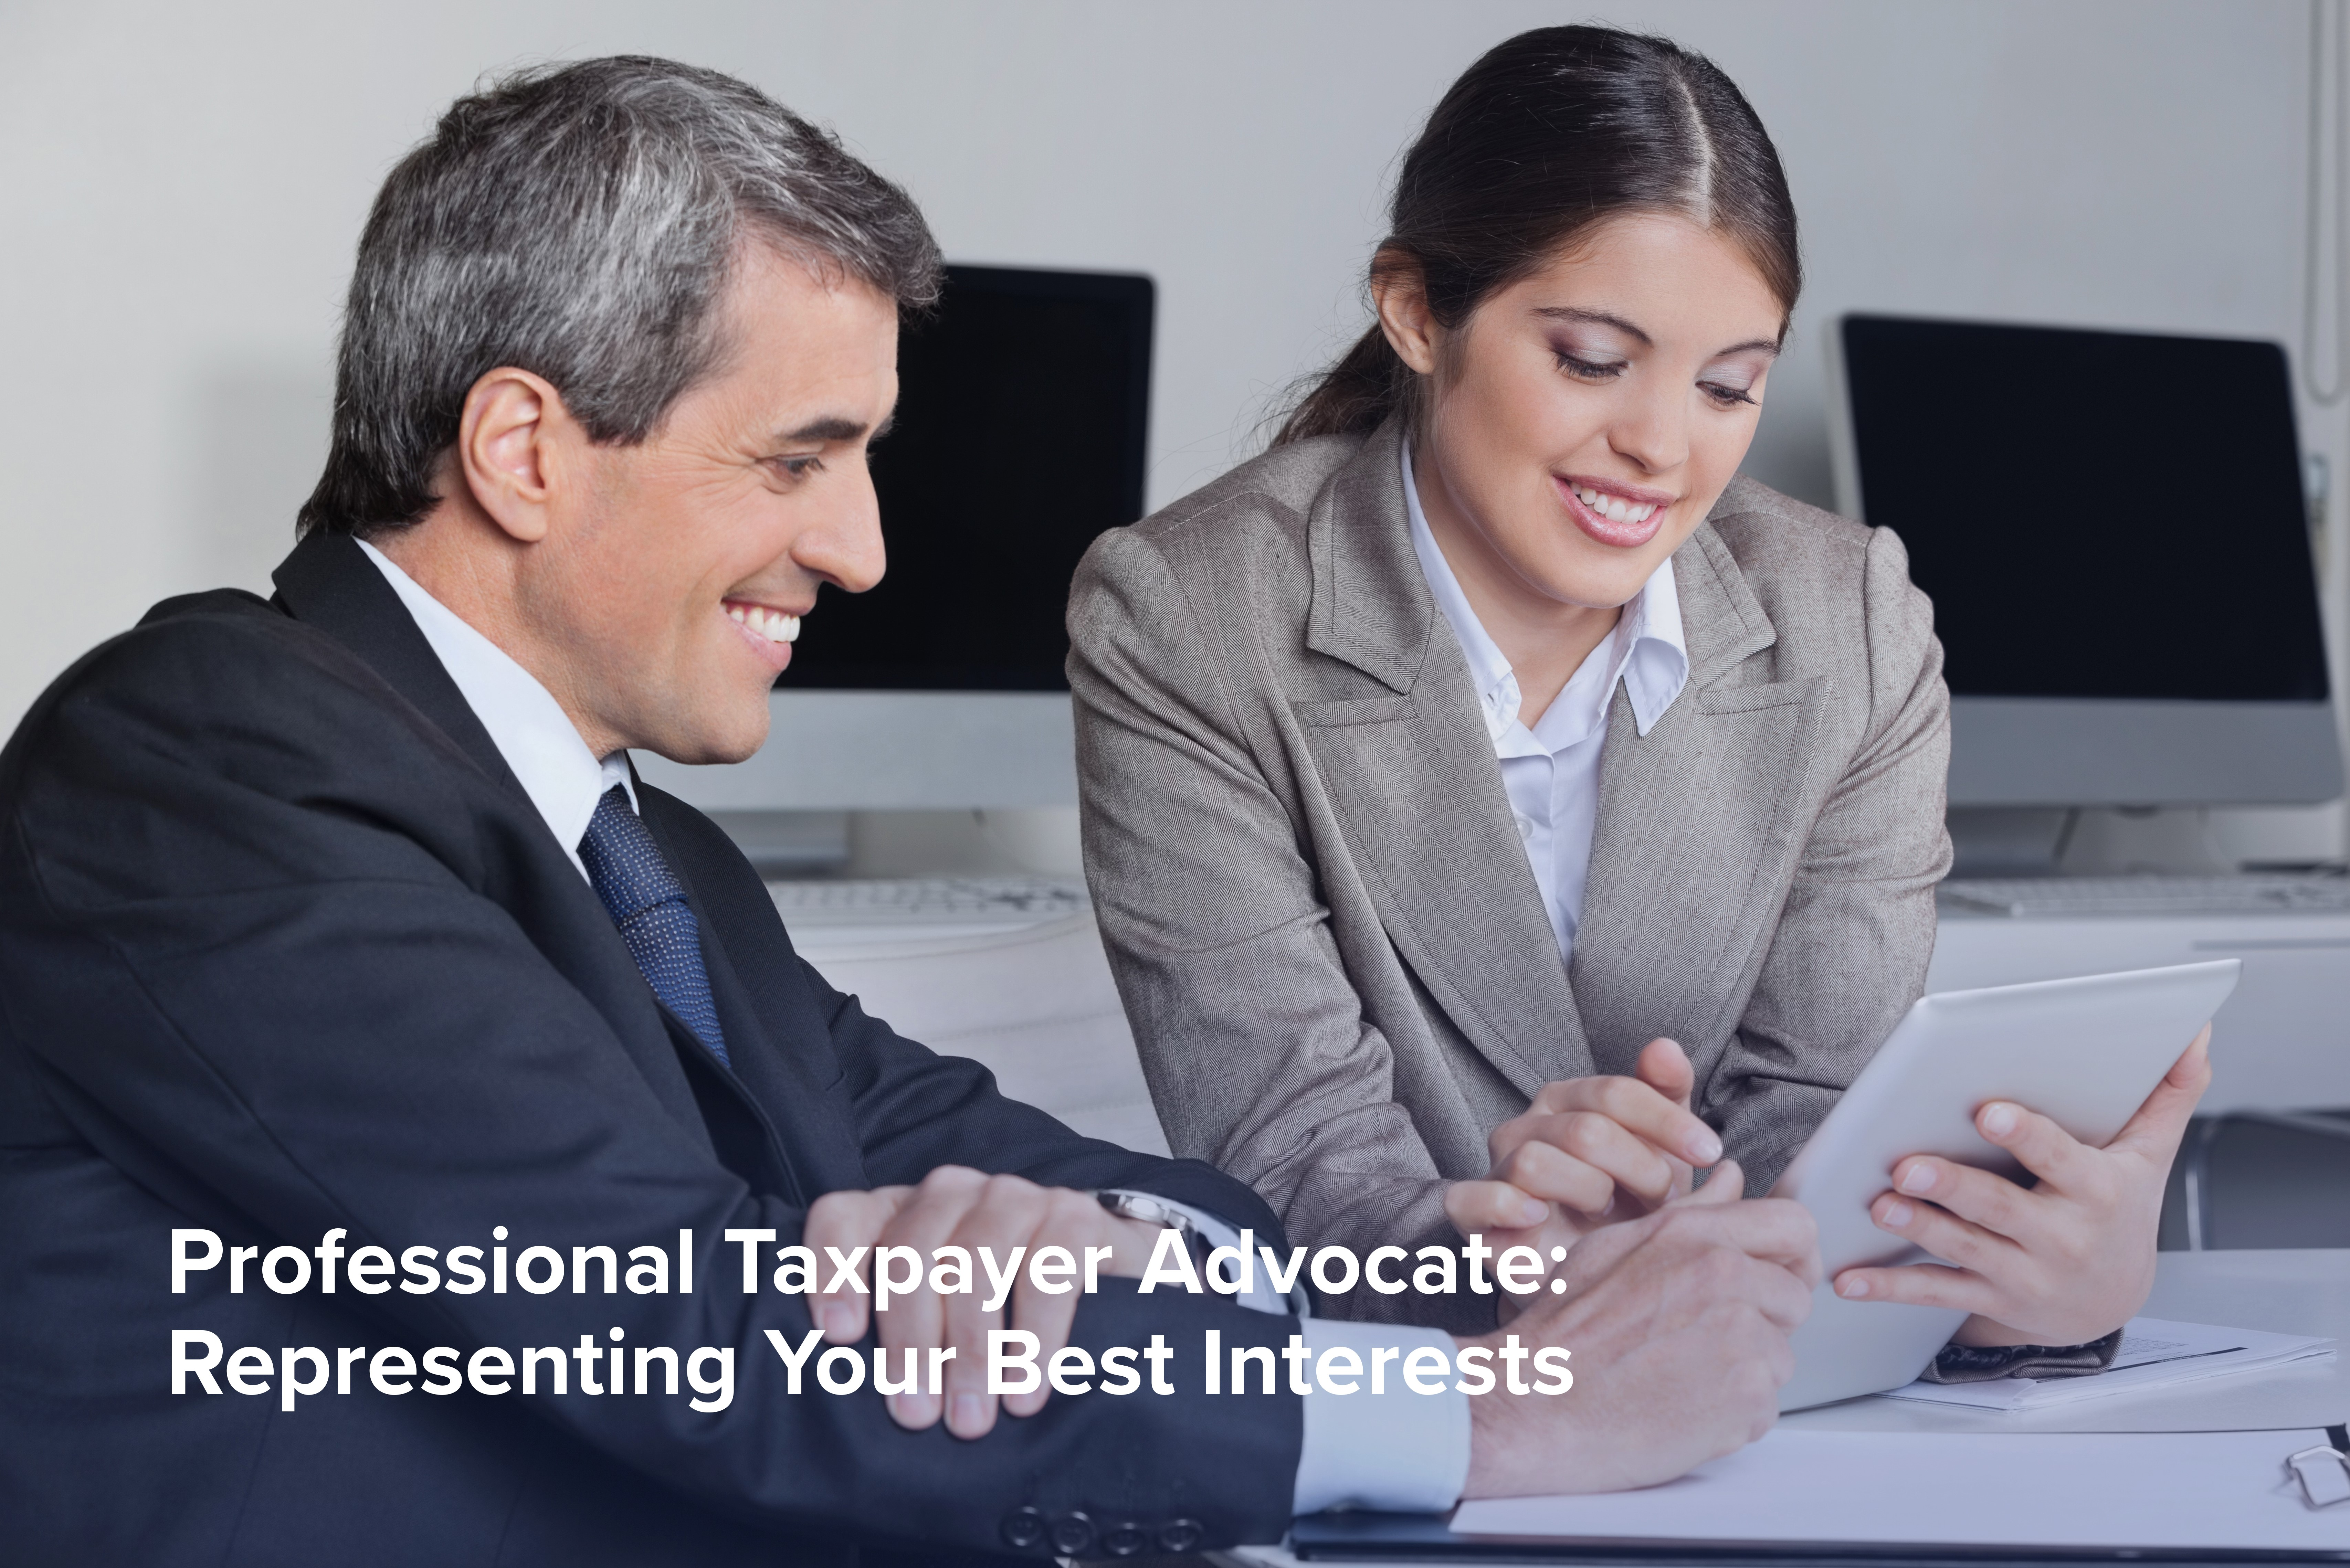 Professional Taxpayer Advocate Representing Your Best Interests